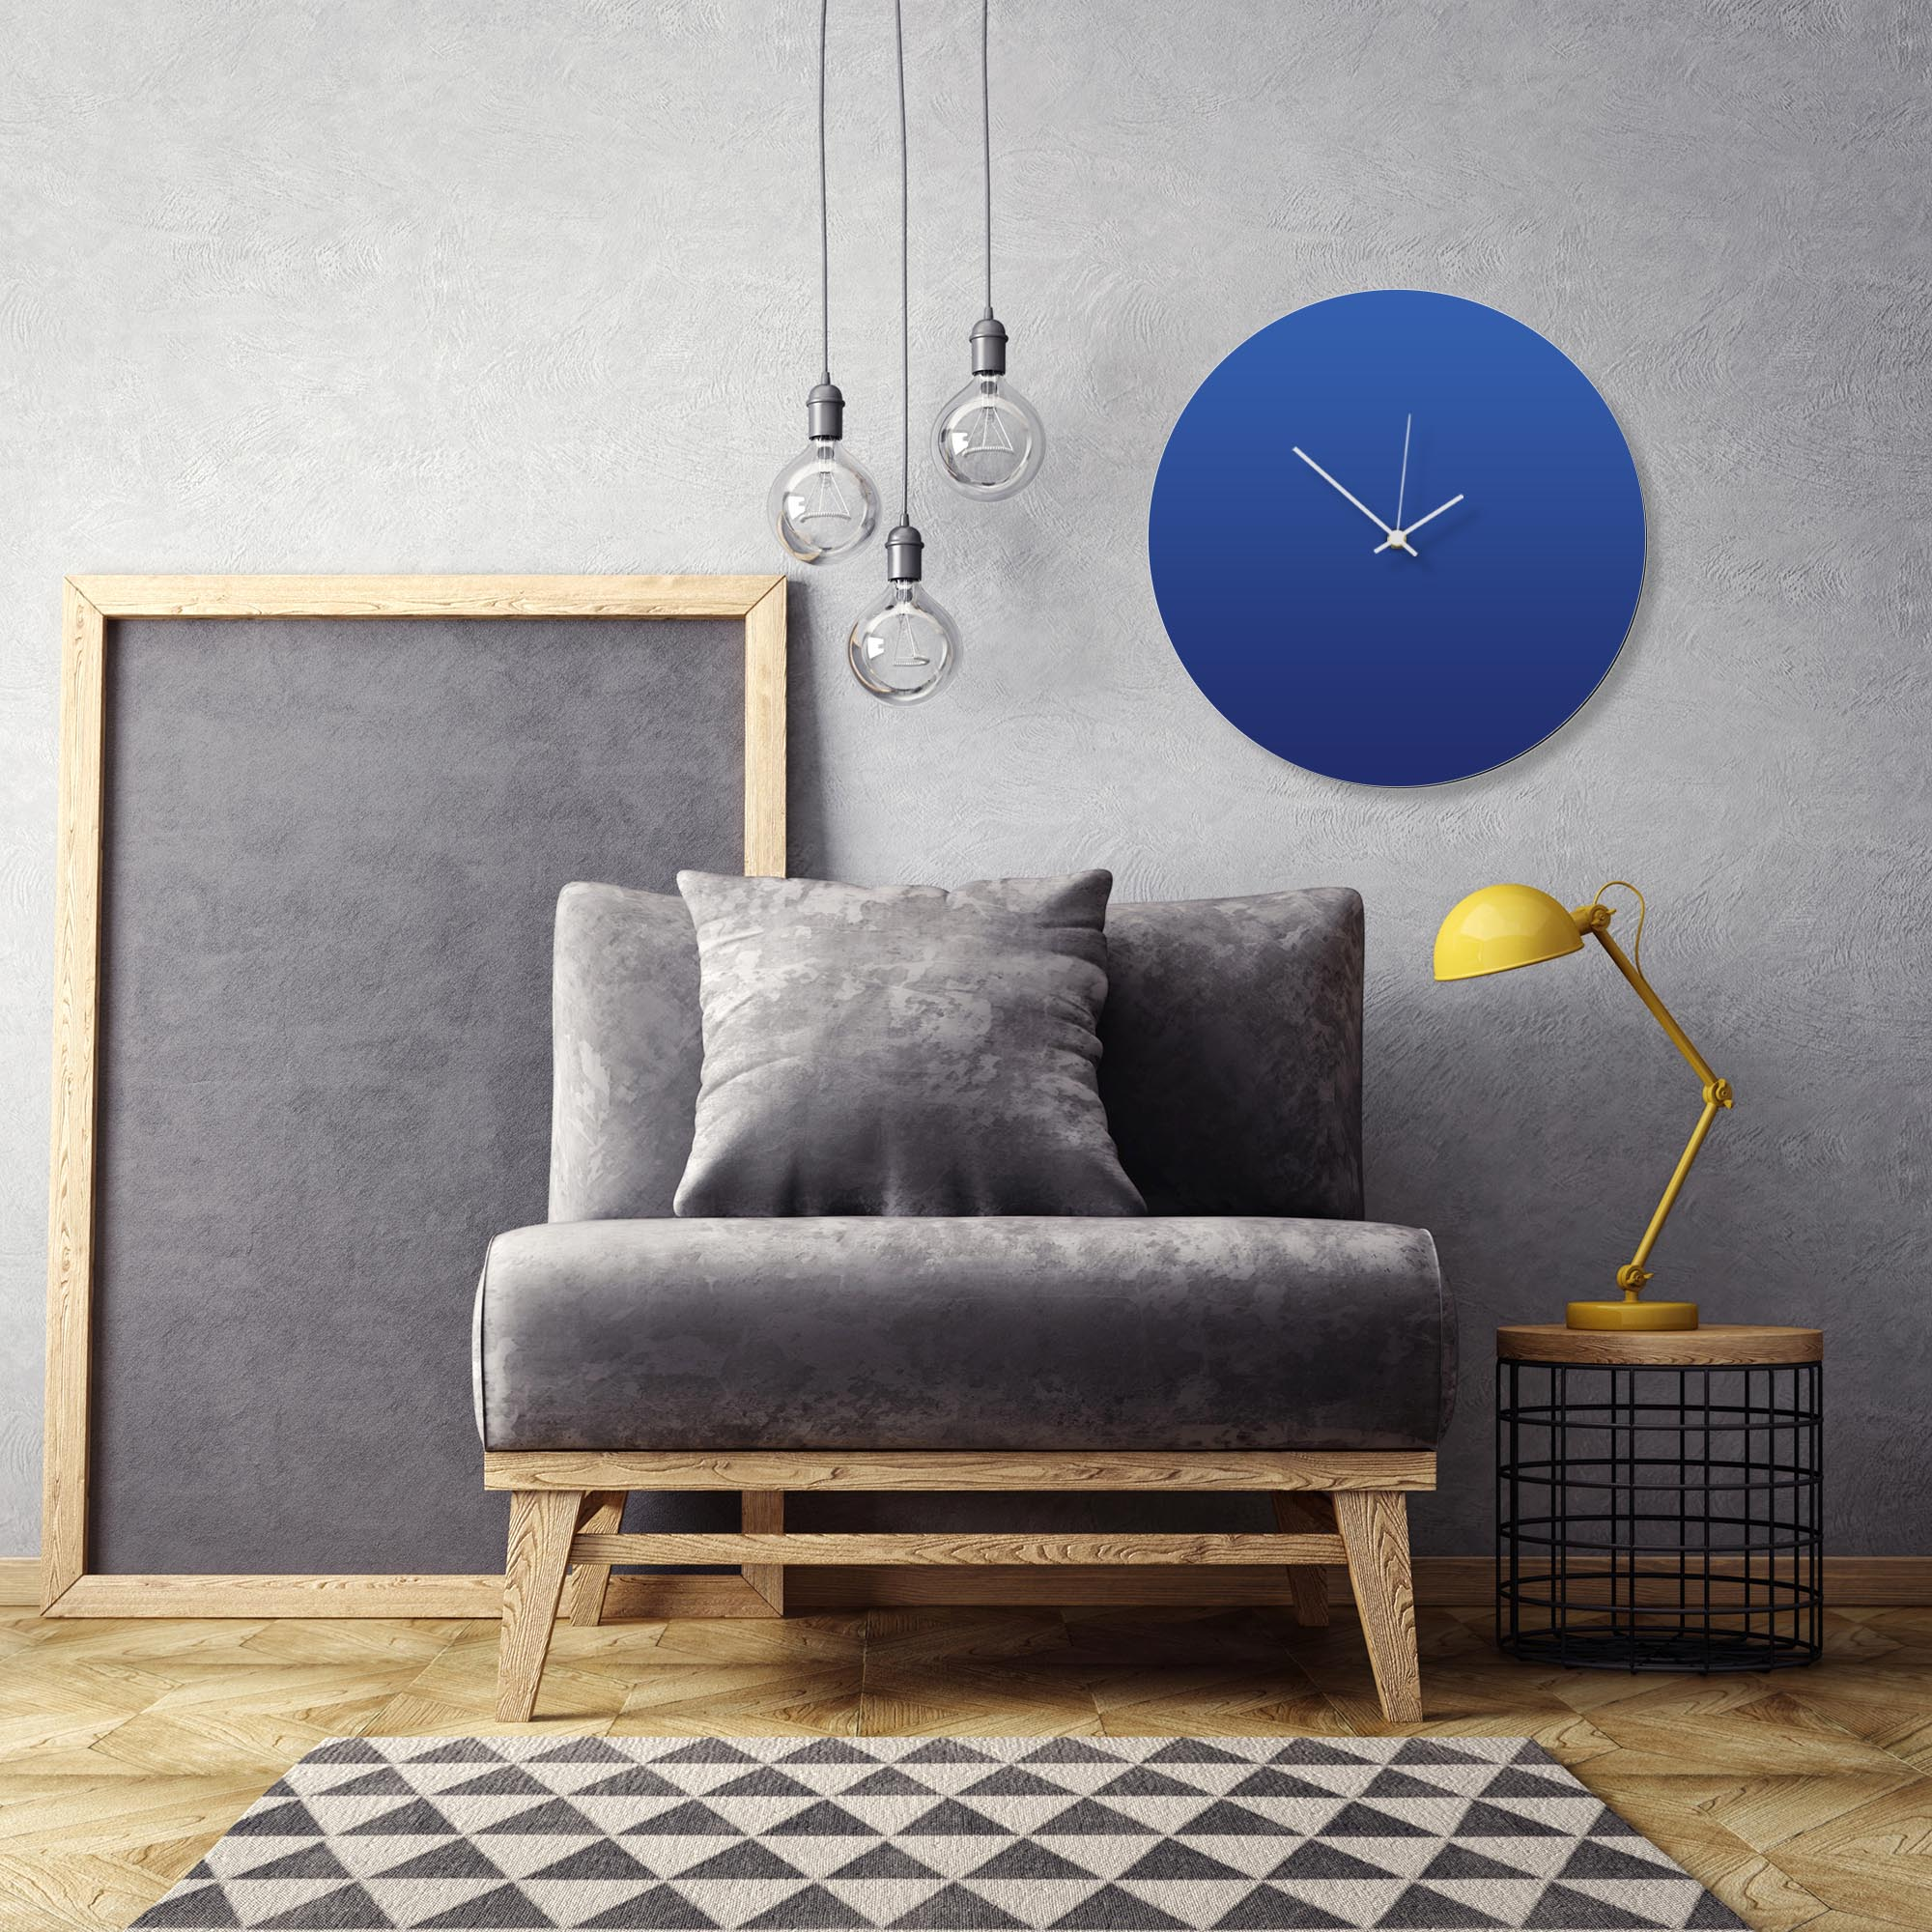 Blueout White Circle Clock Large by Adam Schwoeppe Contemporary Clock on Aluminum Polymetal - Alternate View 1